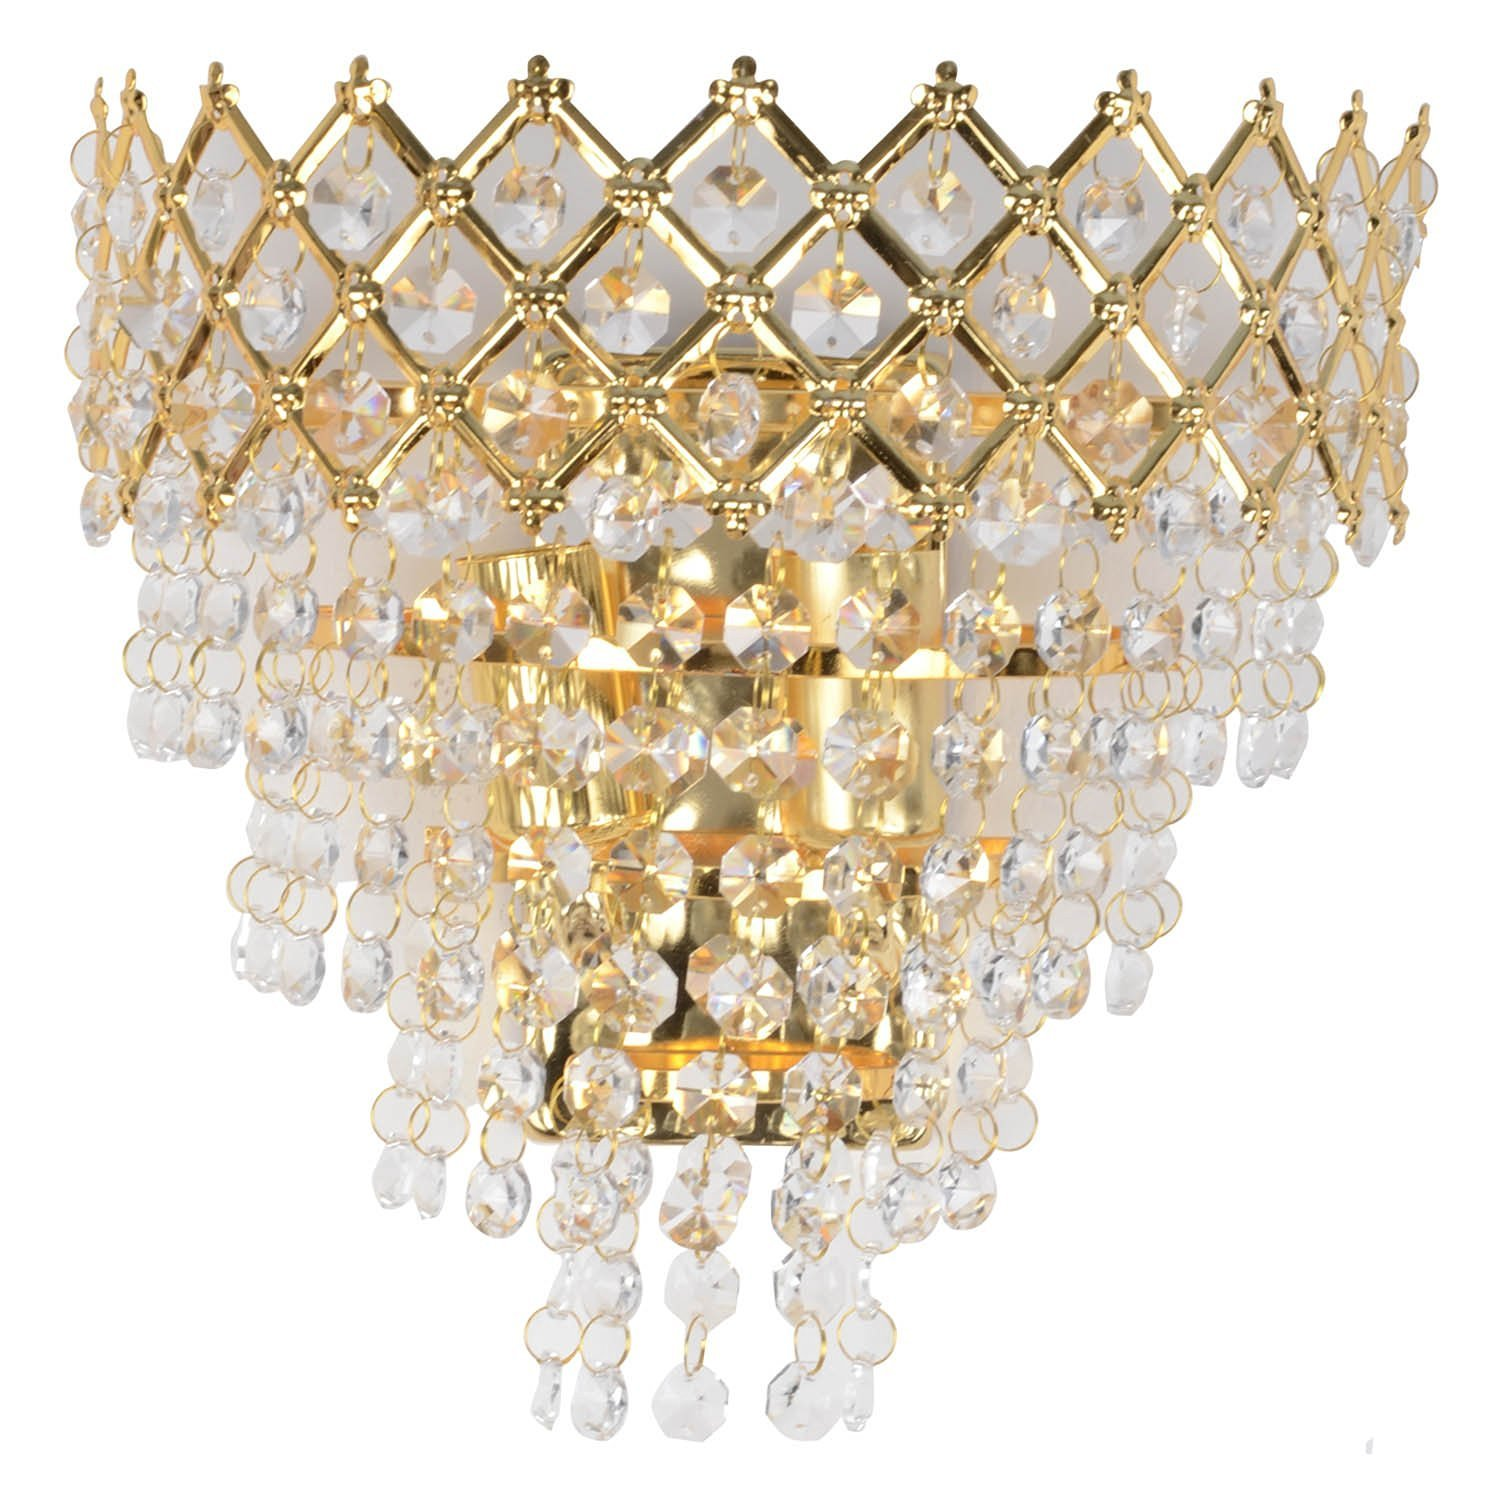 Golden crystal wall light for bedroom living room home decor